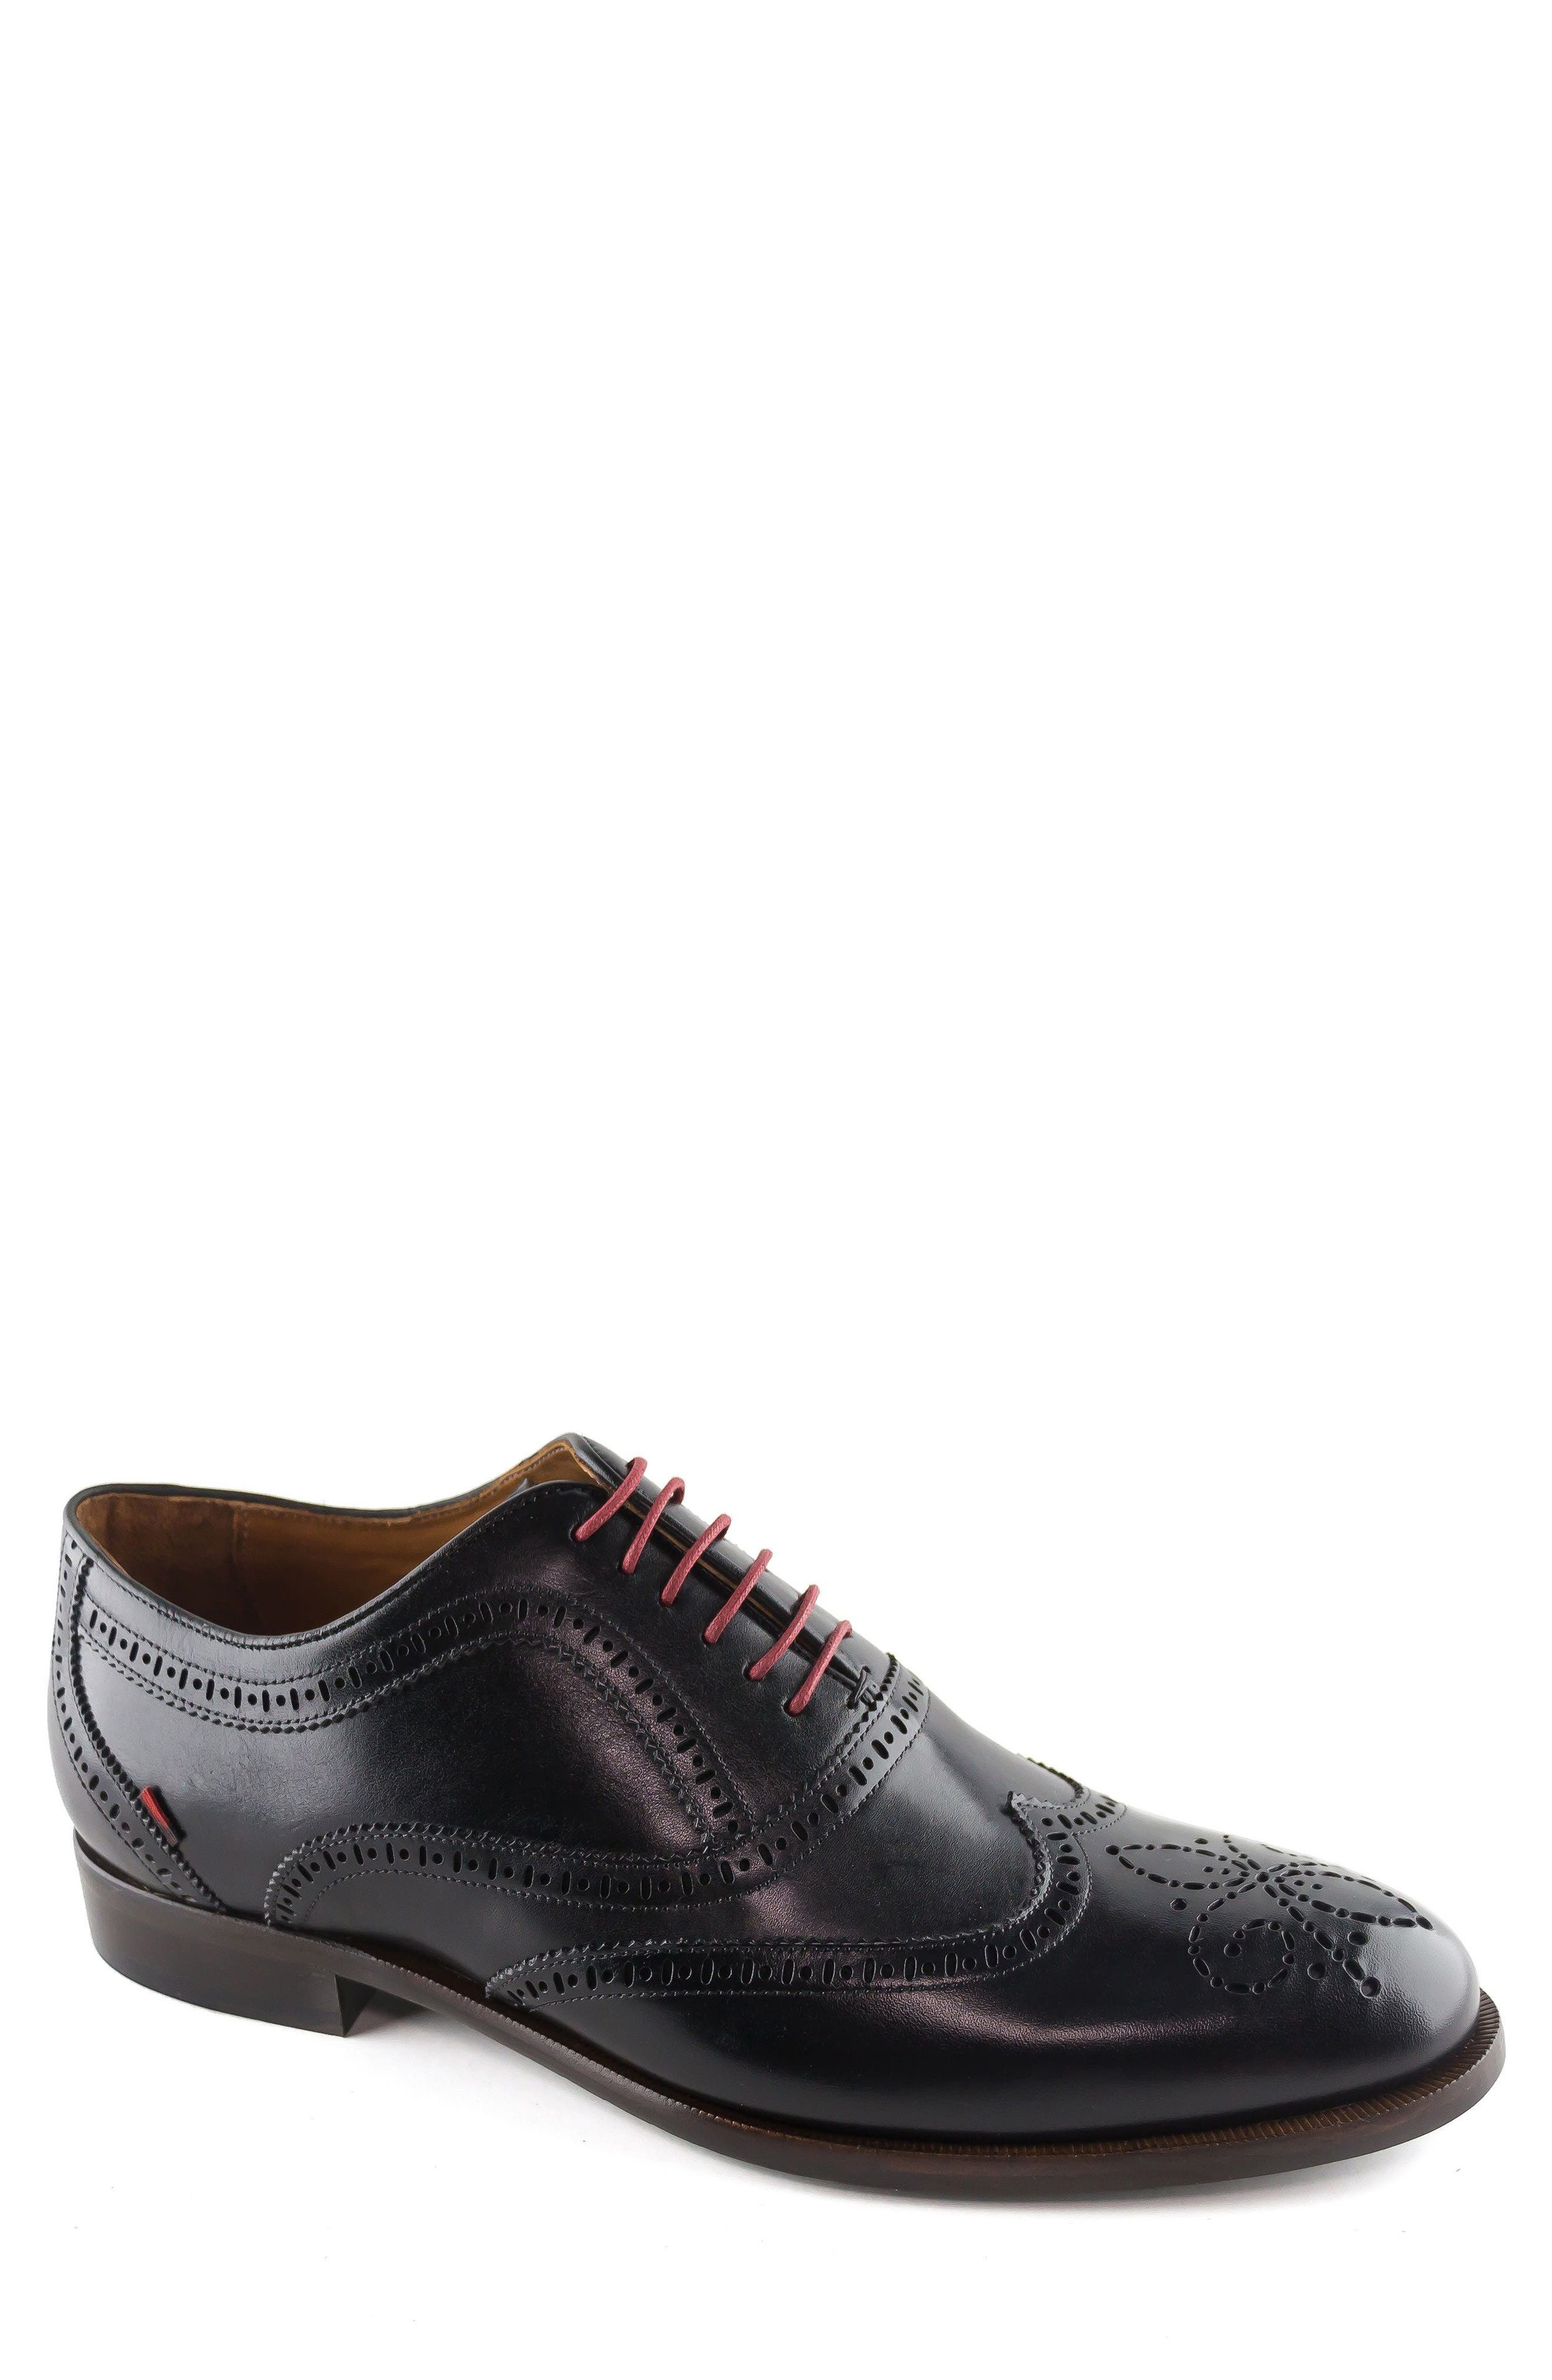 Madison Wingtip Oxford,                             Main thumbnail 1, color,                             BLACK